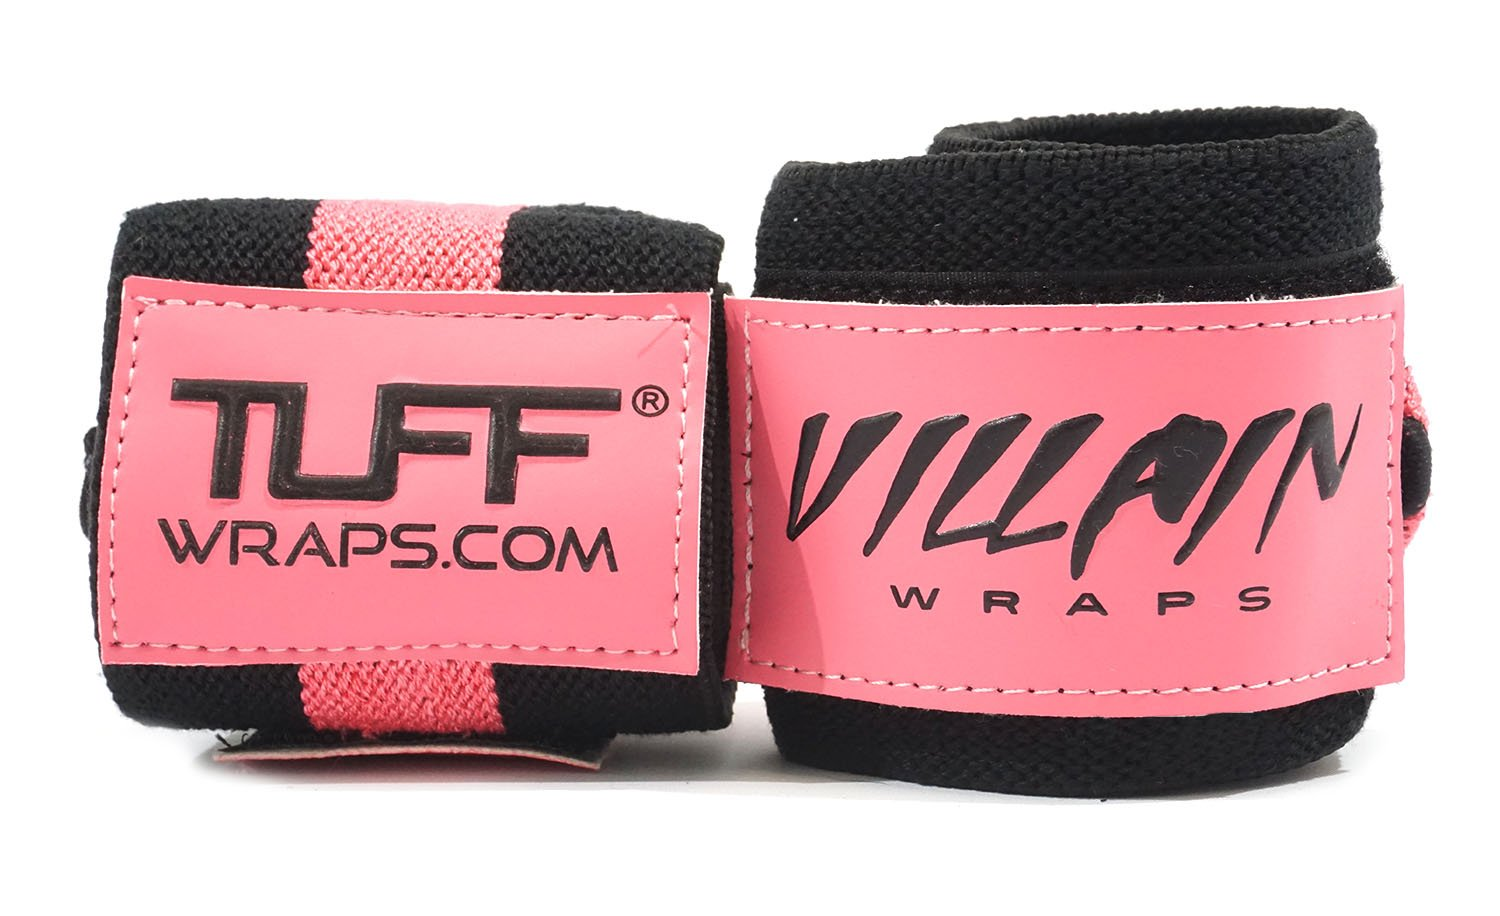 Tuffwraps: 16'' Villain Wrist Wraps for Crossfit, Olympic Weightlifting, Power Lifting. Innovative Thumb Loop for Easy Application. (Pink/Black)